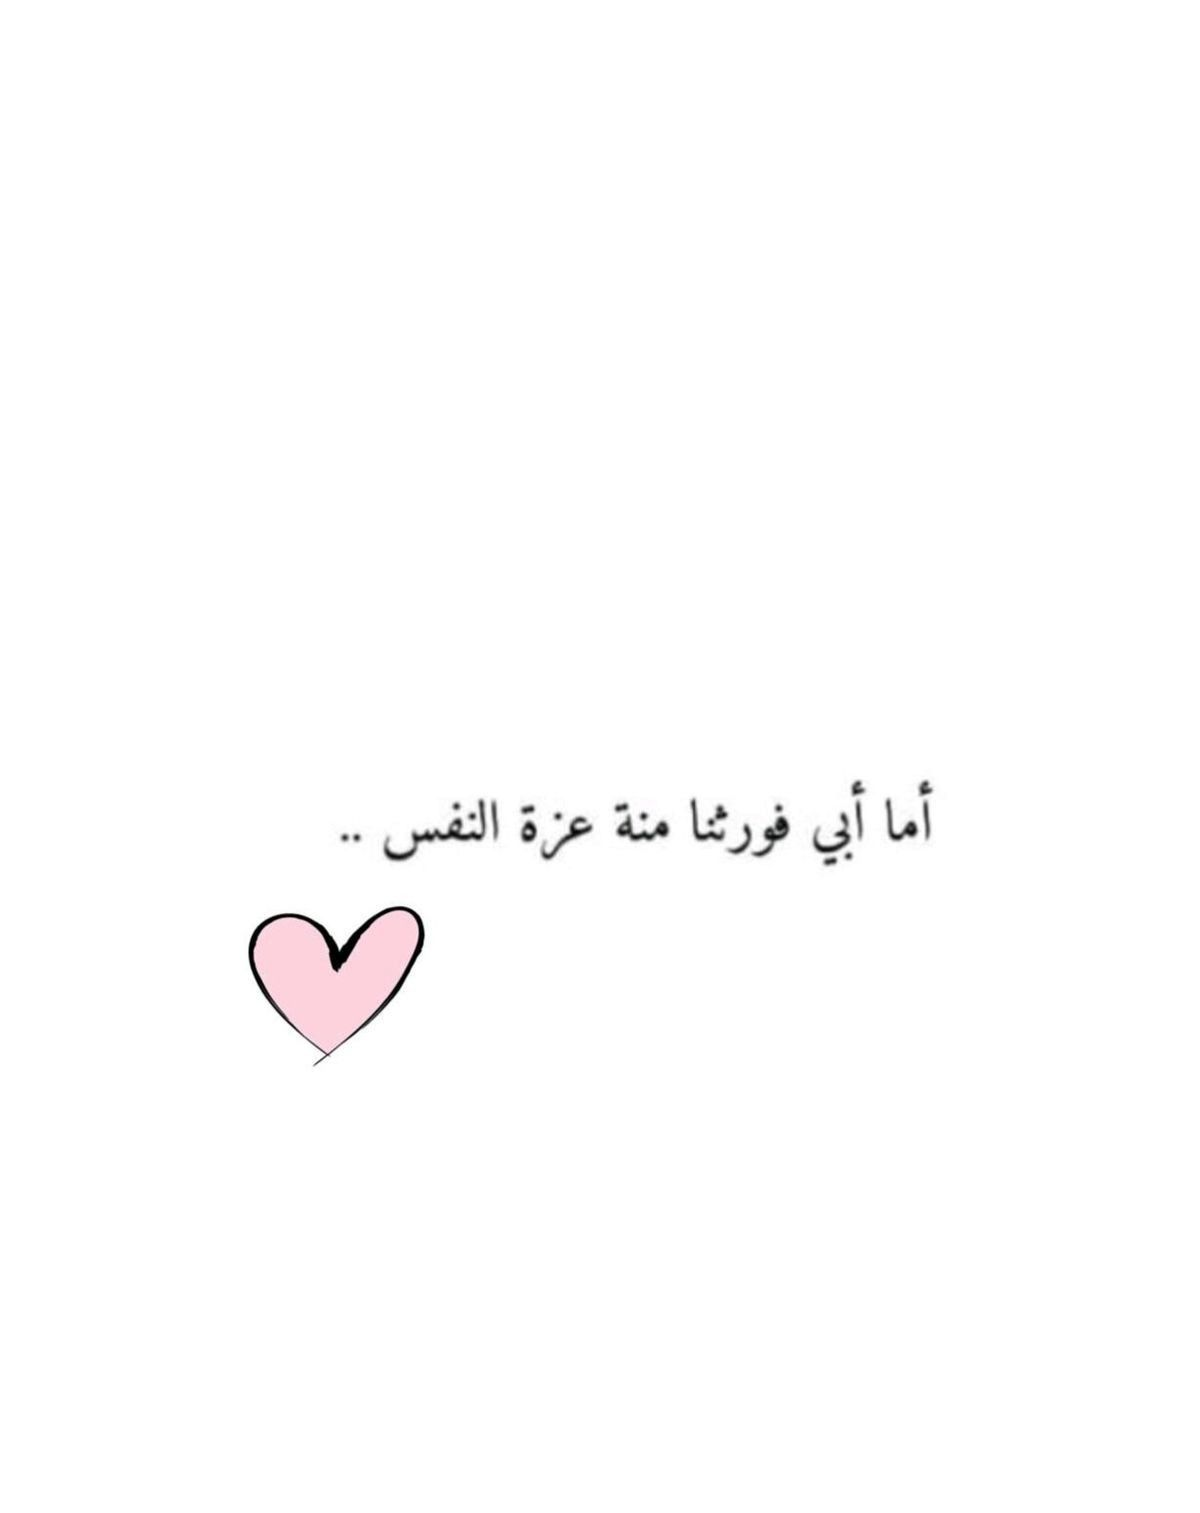 Pin By Abdallah On اعمال يدوية Dad Quotes Iphone Wallpaper Quotes Love Arabic Quotes